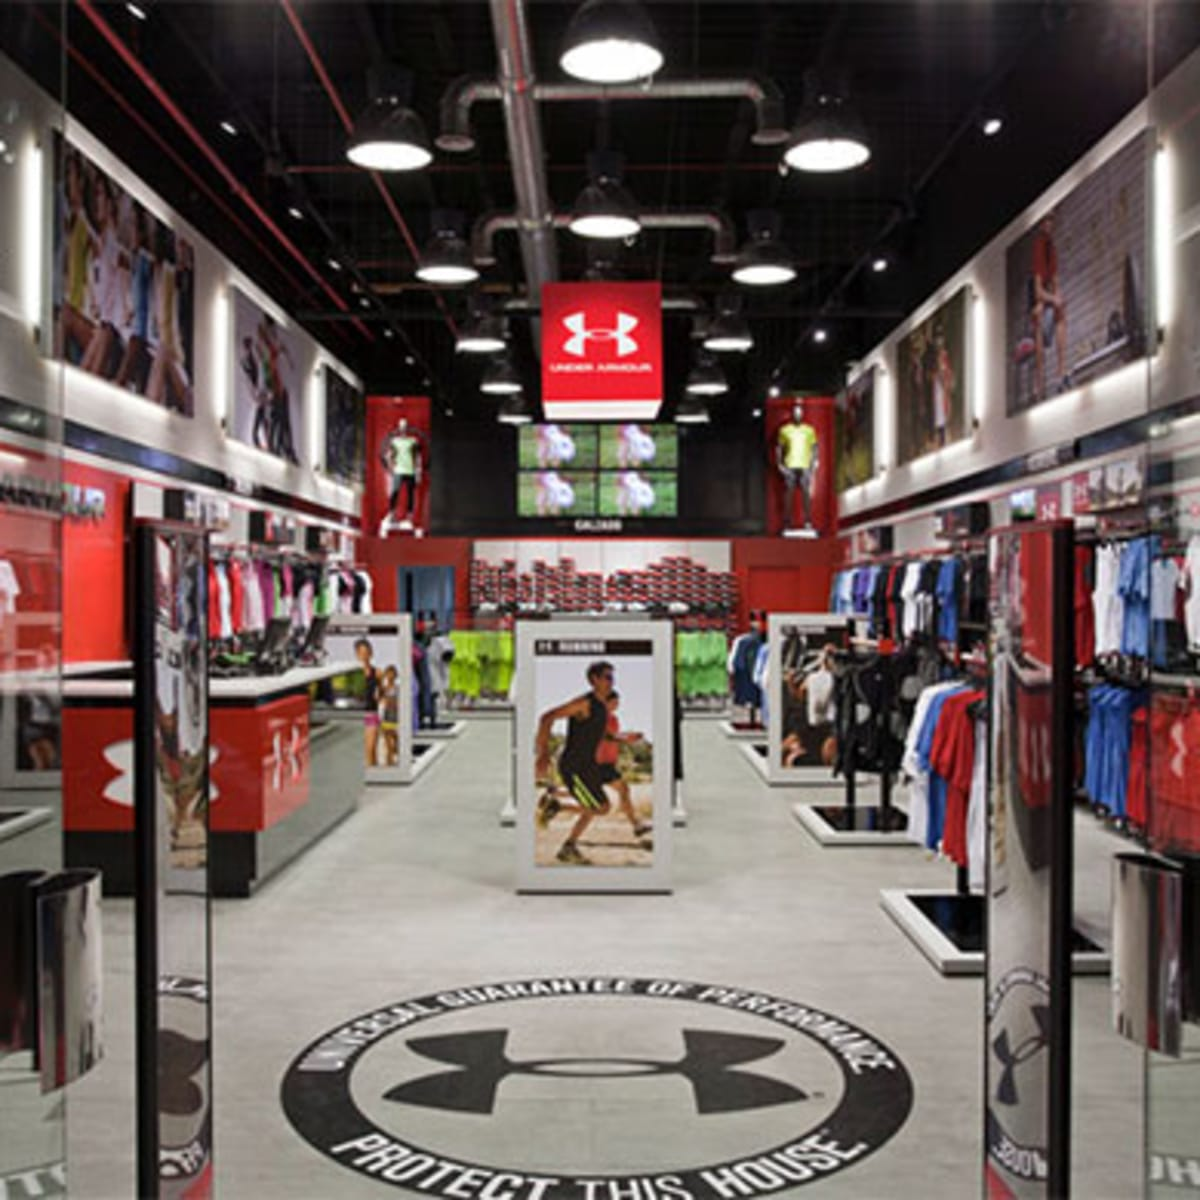 Naturaleza Mantenimiento patio de recreo  Under Armour (UA) Moves to Control Own Future by Opening 200 New Stores in  2016 - TheStreet